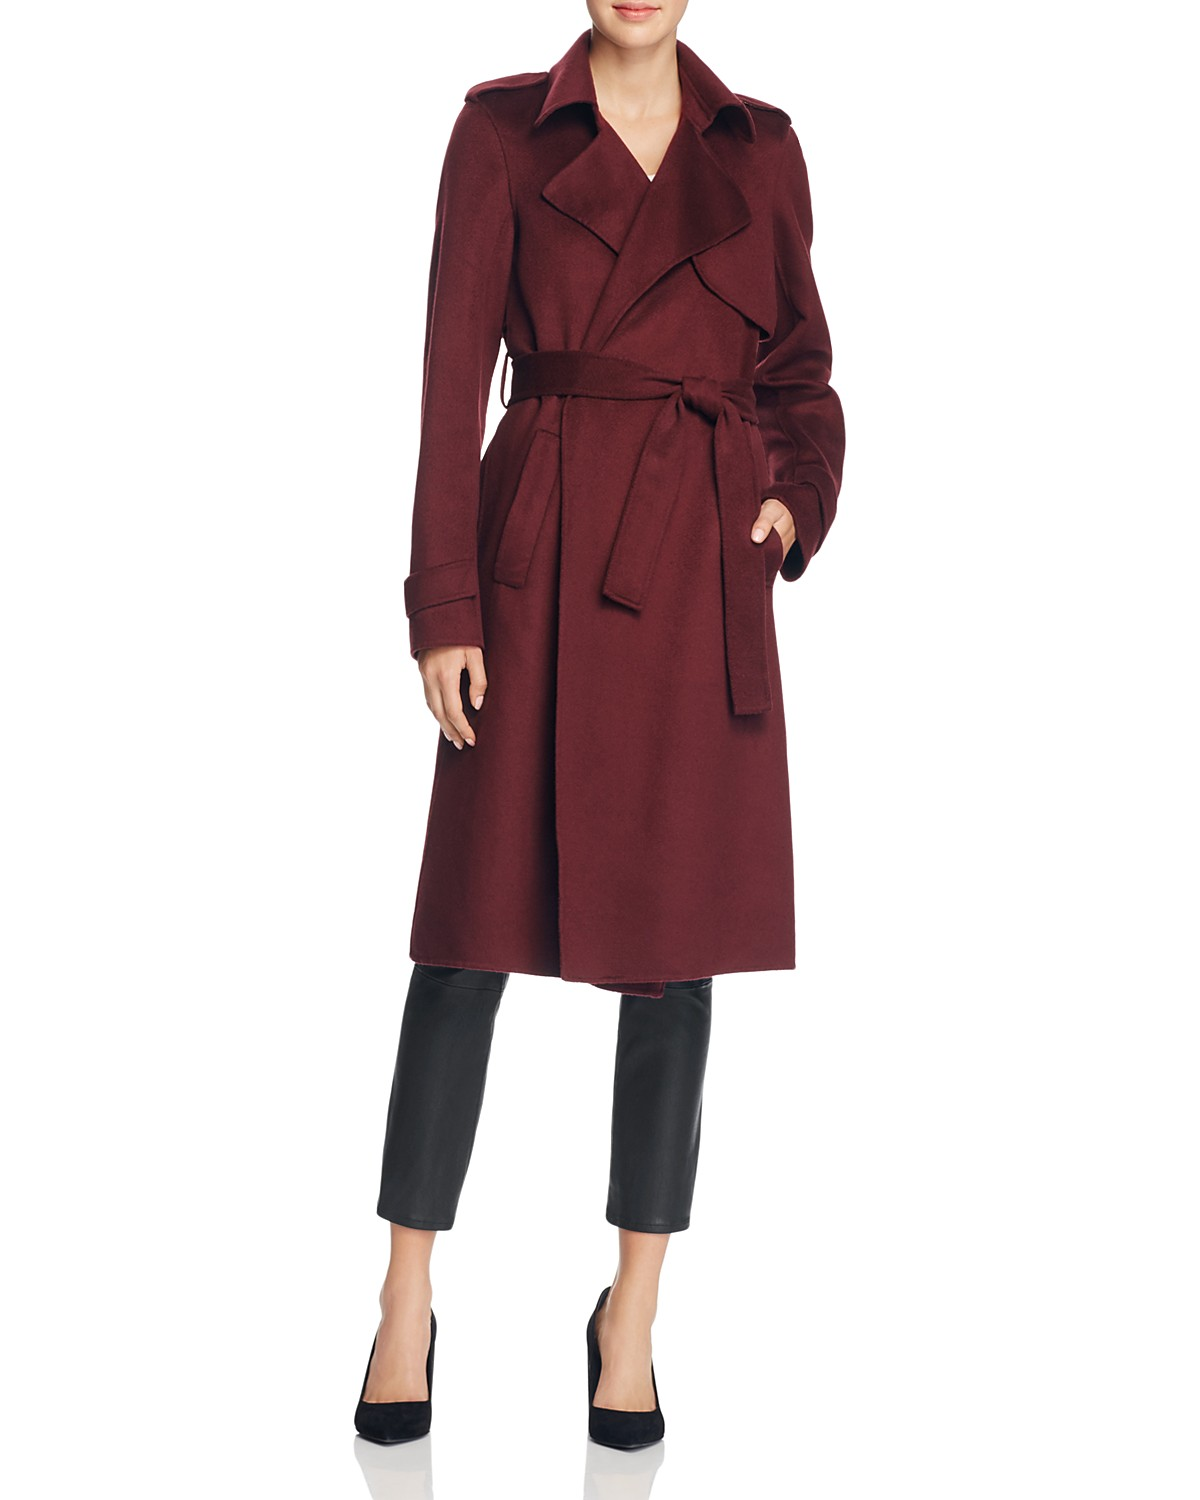 73a5a38db58 Very Goods | Theory Oaklane Wool-Blend Trench Coat | Bloomingdale's